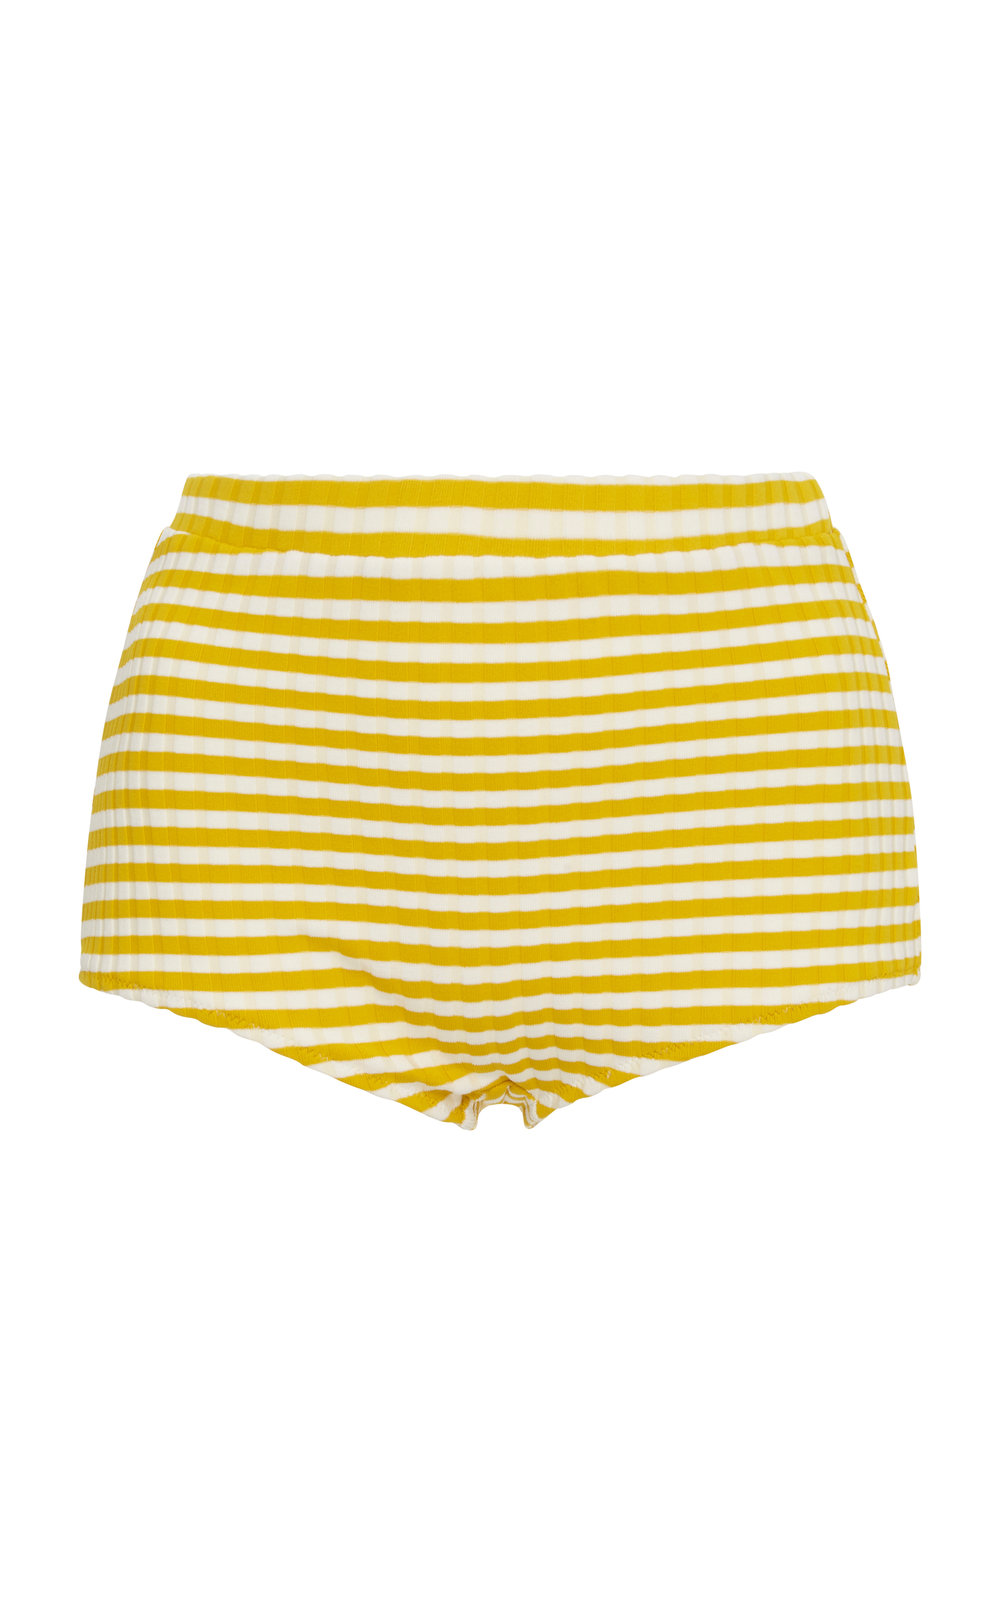 large_solid-striped-stripe-jamie-mustard-striped-bikini-bottom.jpg